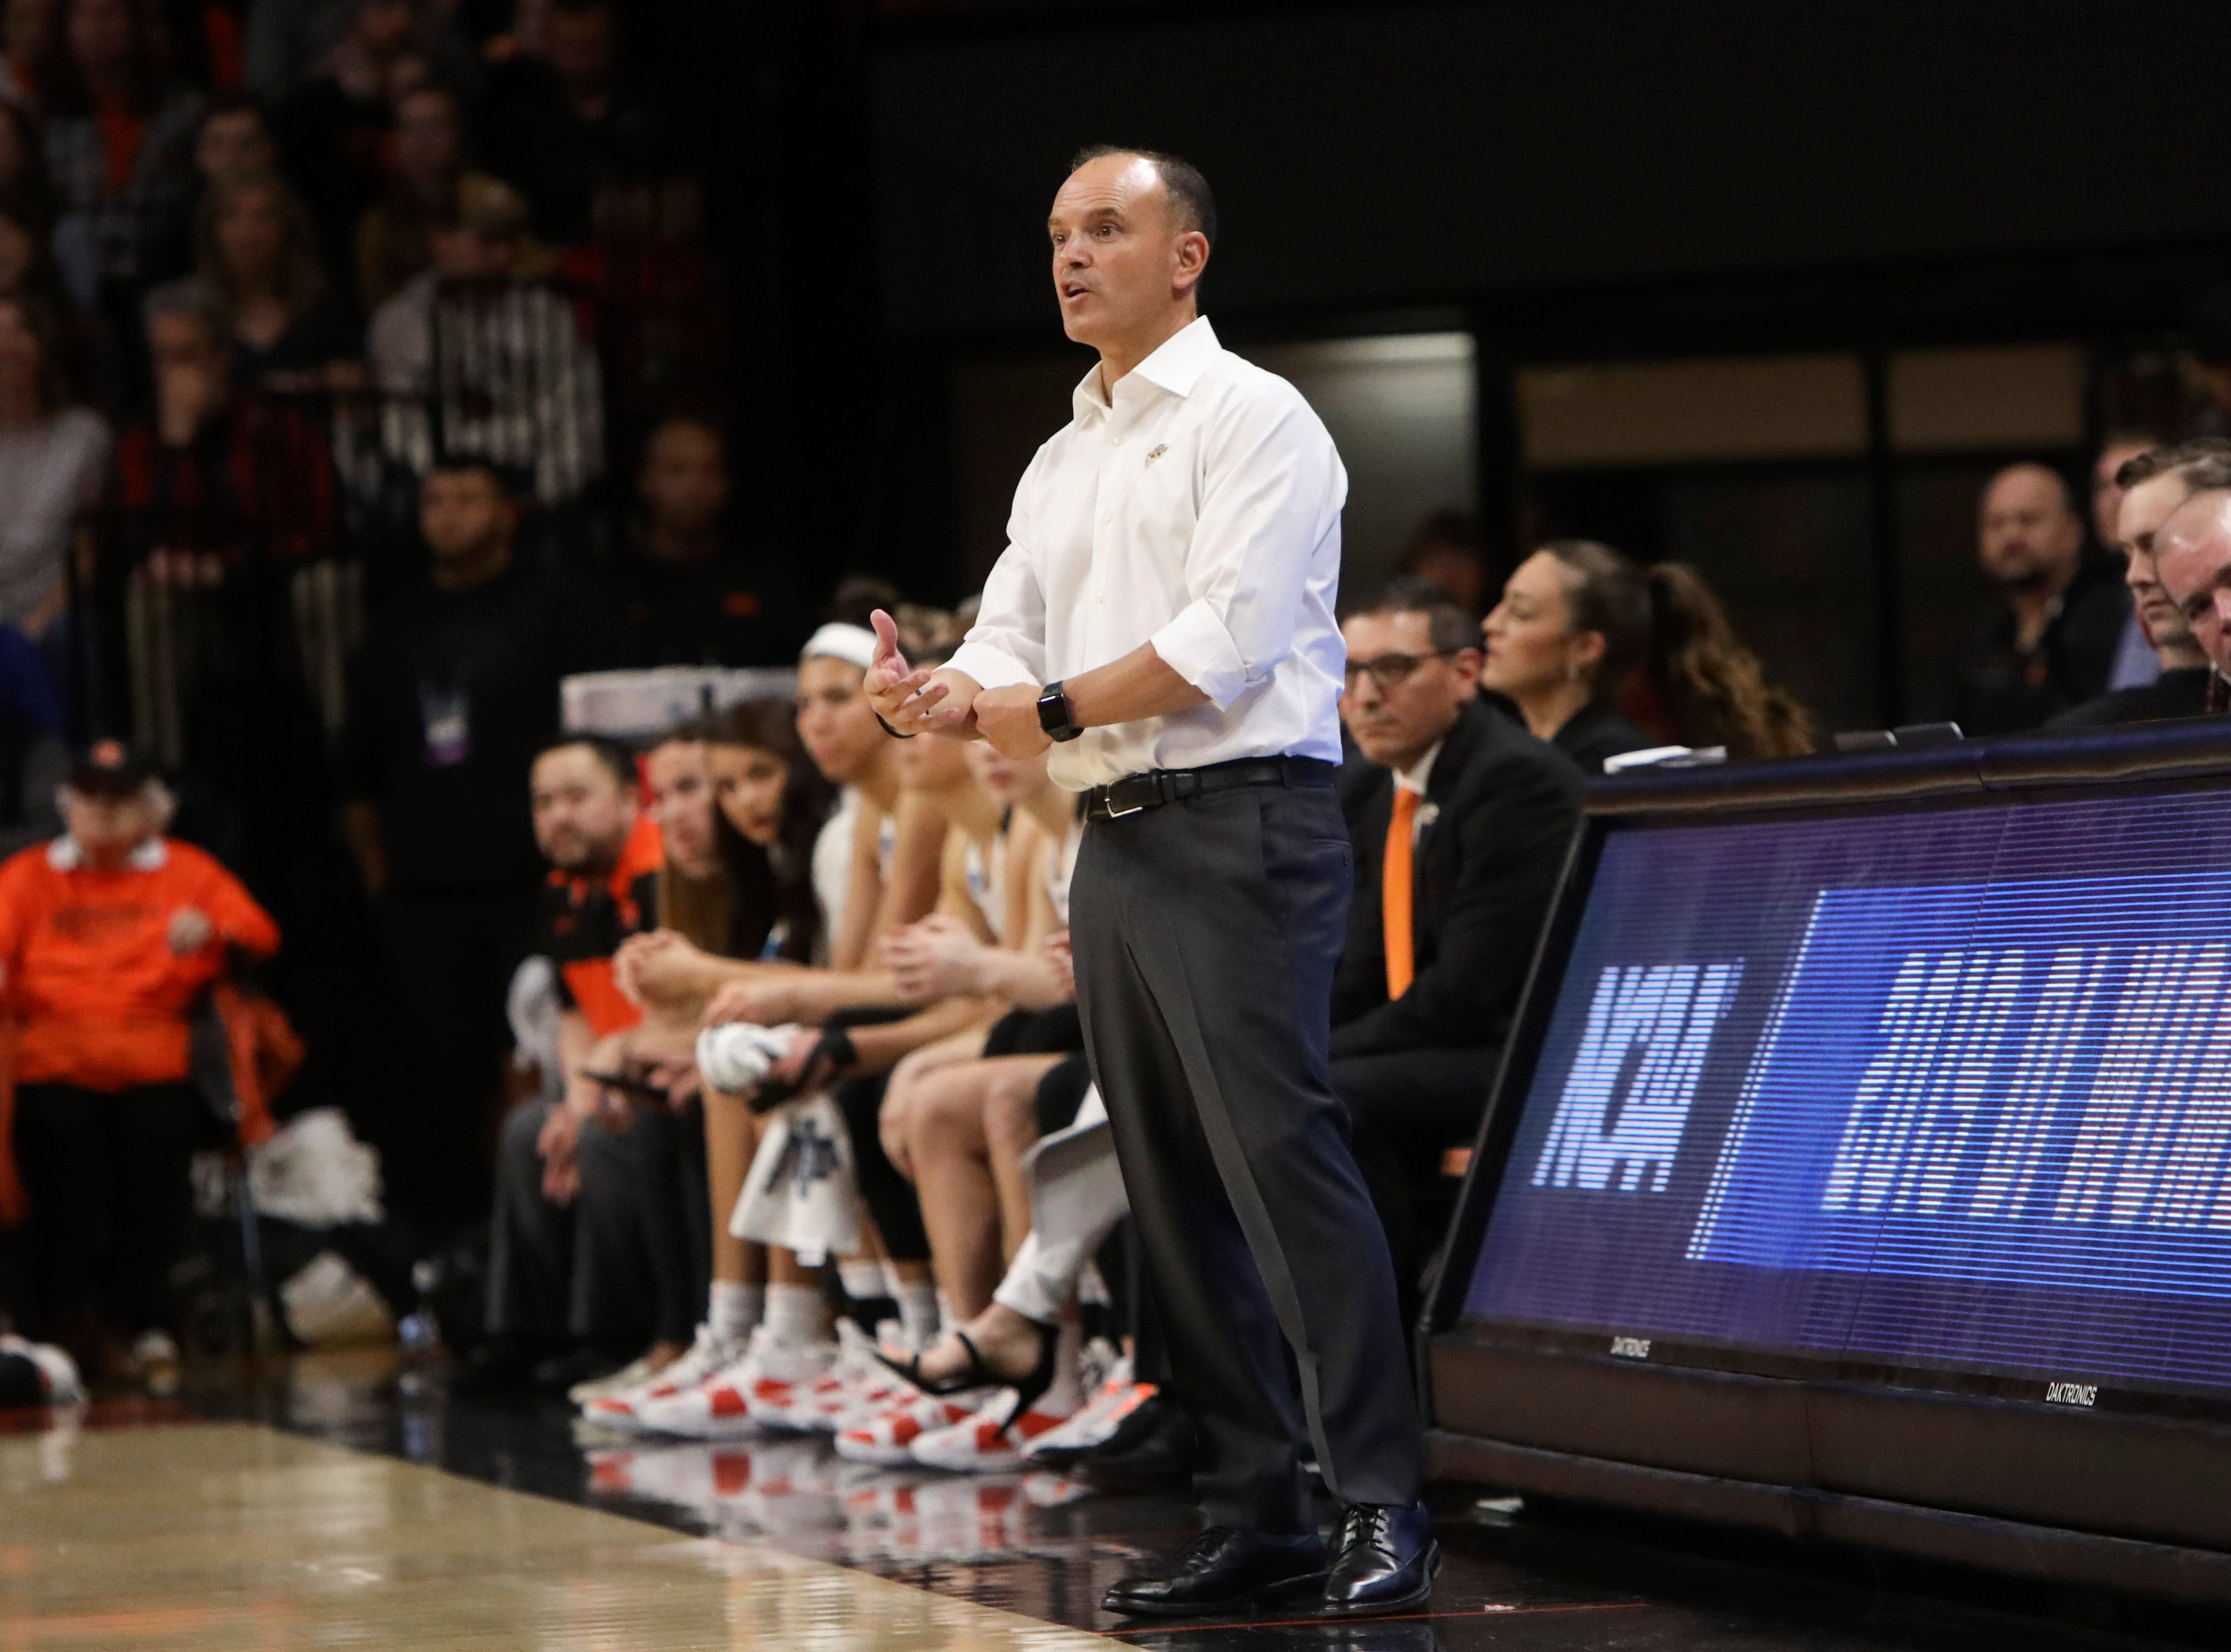 Oregon State head coach Scott Rueck calls out to players during the first half of a second-round game of the NCAA women's college basketball tournament against Conzaga in Corvallis, Ore., Monday, March 25, 2019. Oregon State won 76-70 (AP Photo/Amanda Loman)